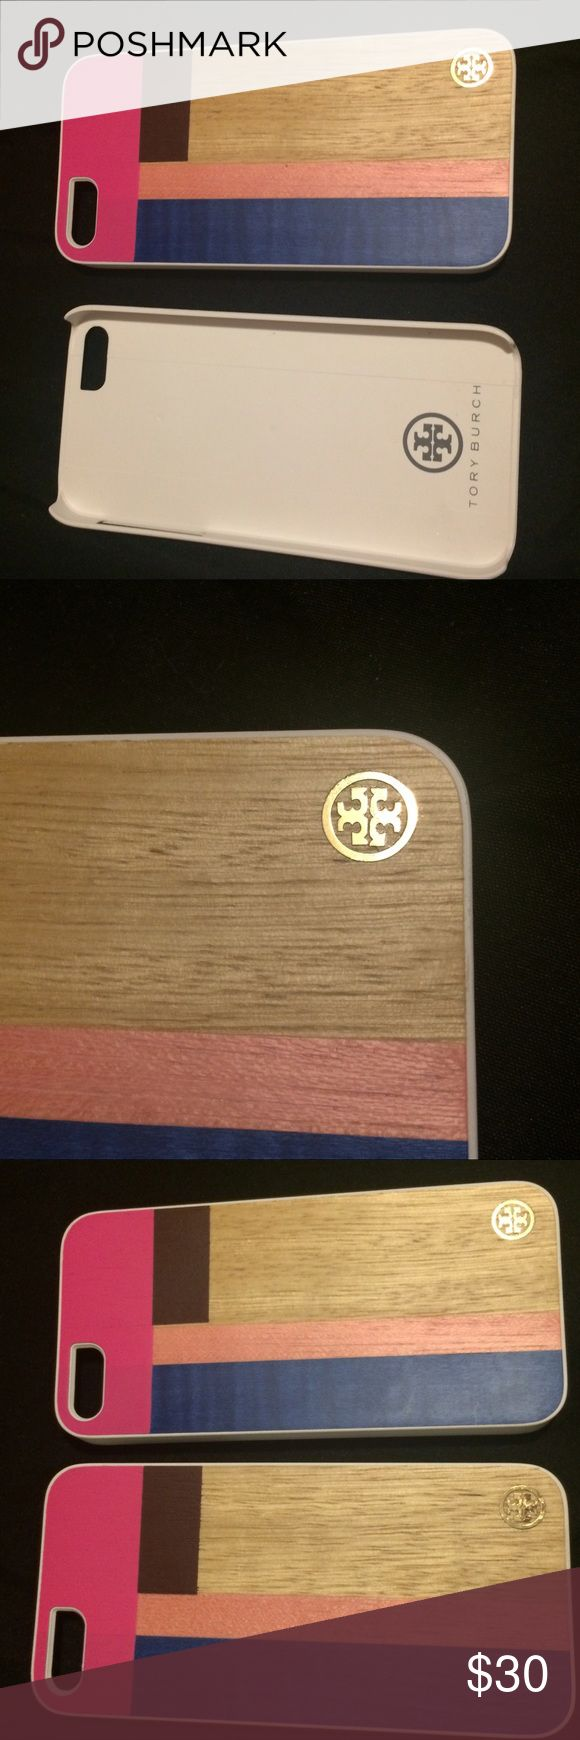 Tory Burch wood grain case for iPhone 5/5s Two available I can do both for $50 or 1 for $30 guaranteed authentic or your money back. Comes with a free gift  valued at $20. I can take more photos if you want me to. Tory Burch Other